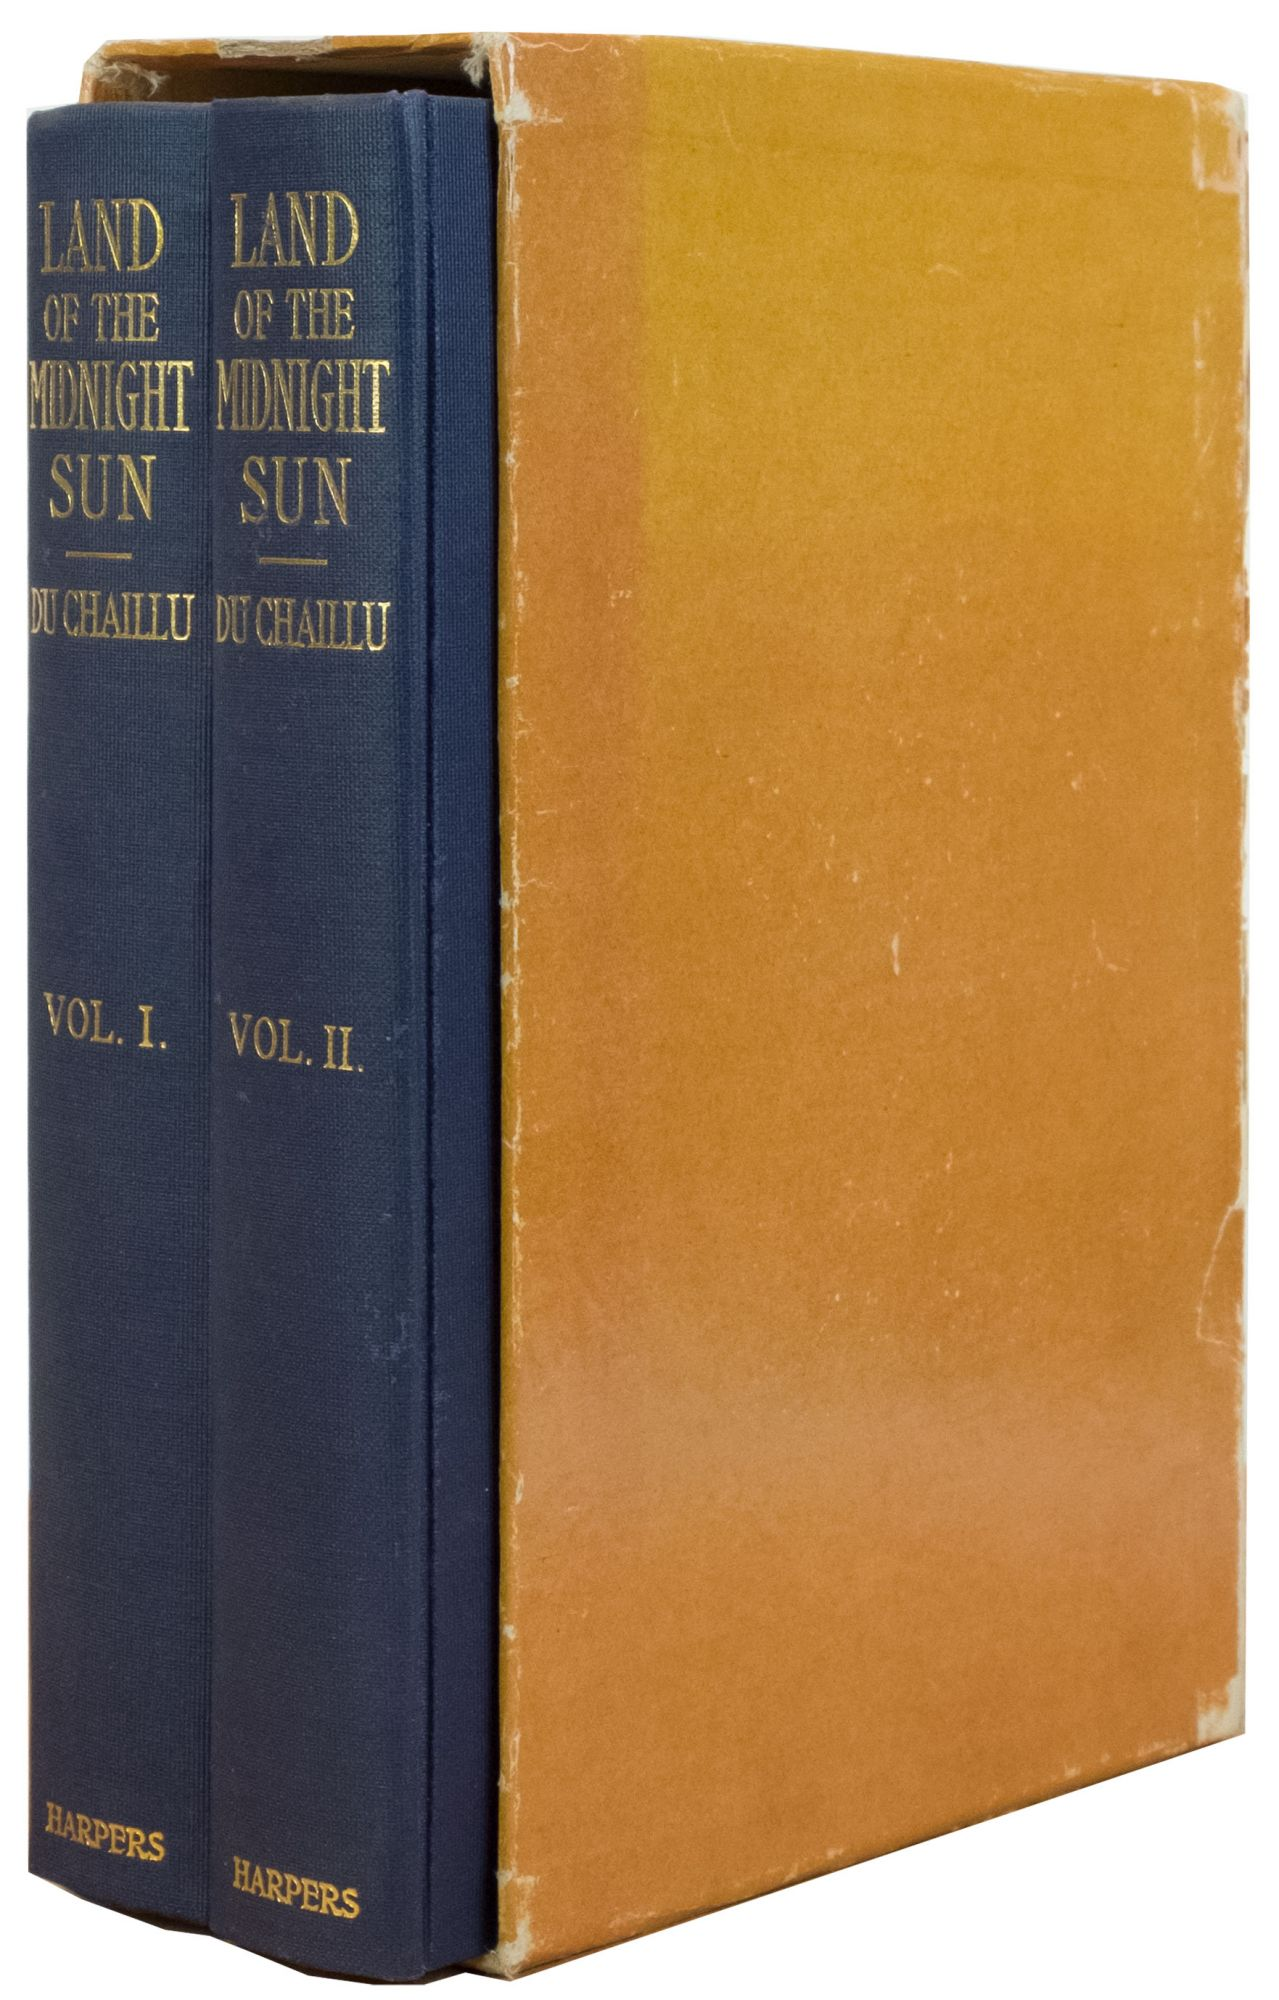 The Land of the Midnight Sun by Paul Du Chaillu on Trophy Room Books